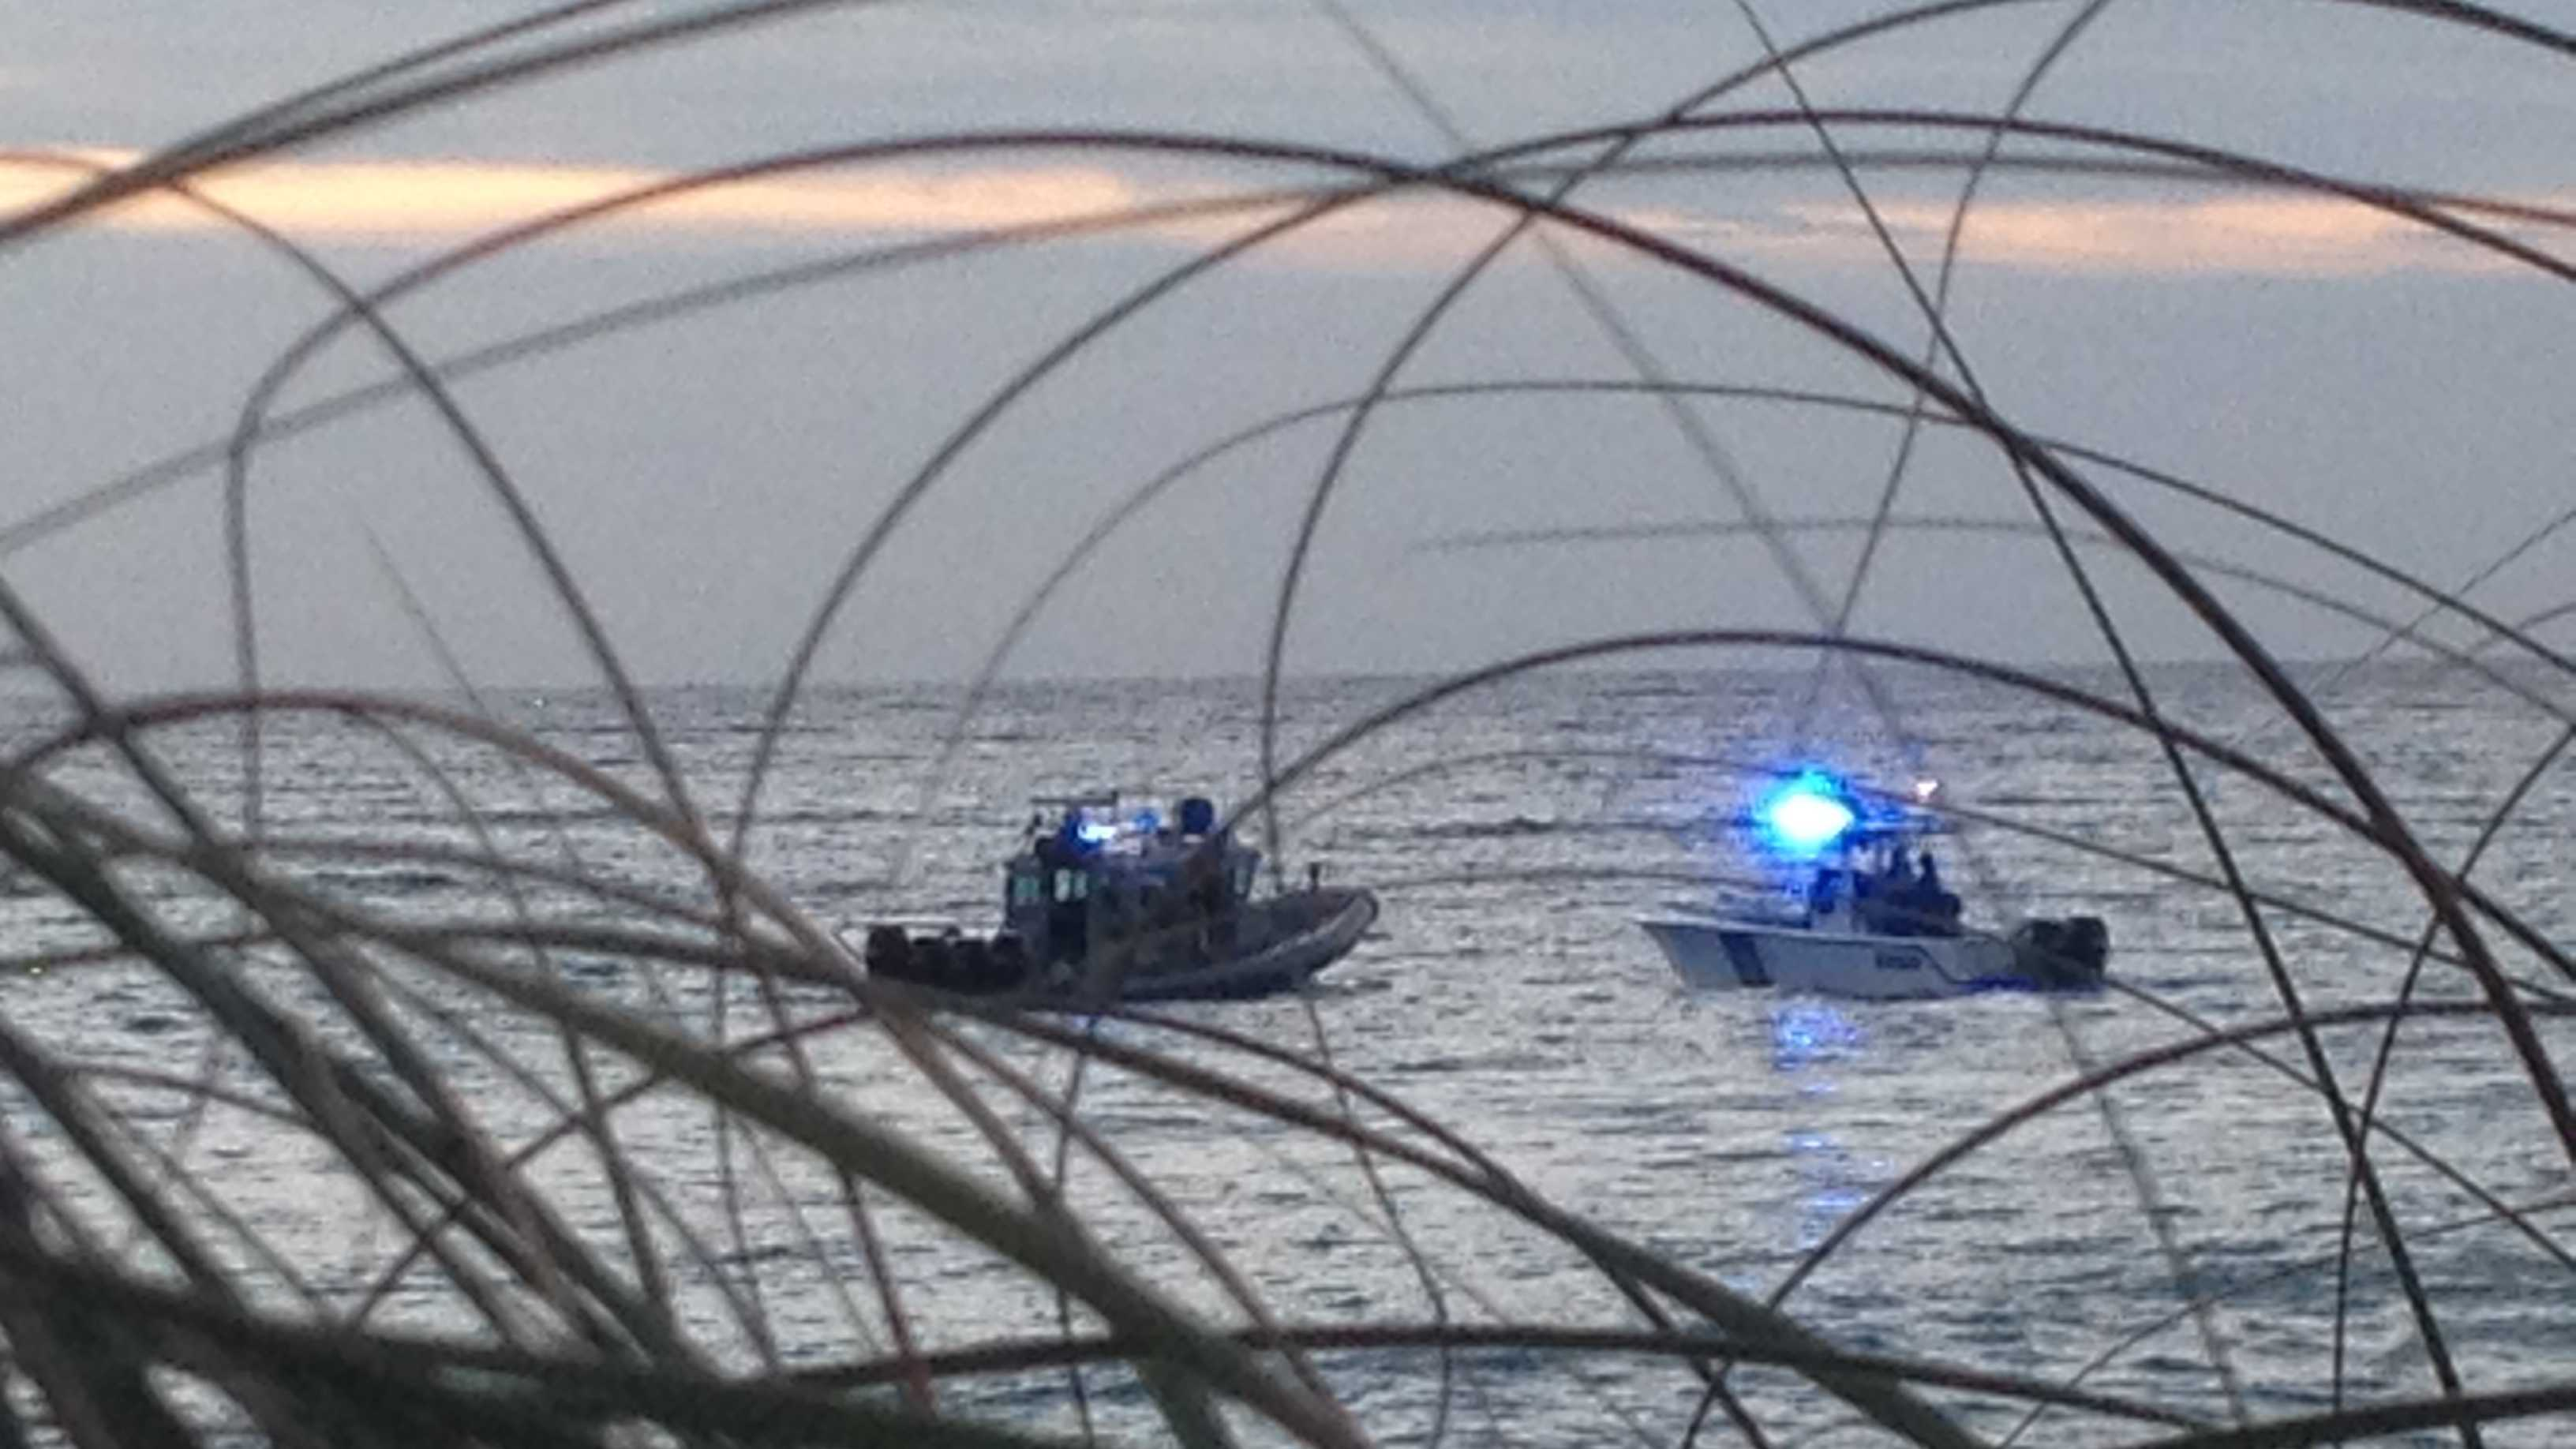 Boynton Beach inlet search for missing swimmer